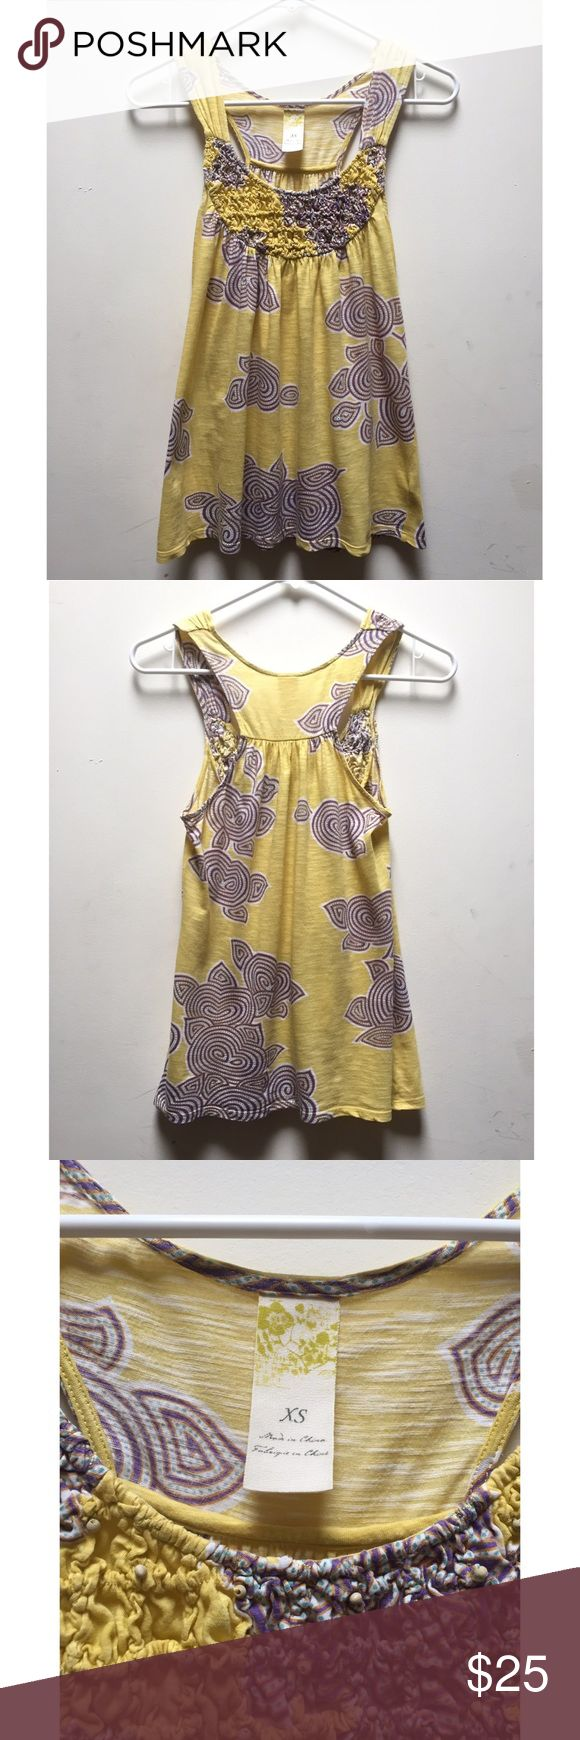 ☀️EUC Anthropologie C. Keer Yellow Coil Tank Top C. Keer by Anthropologie Yellow Tank Top Printed Blouse,  Yellow Coil Tank Top, excellent used condition, size extra small Anthropologie Tops Tank Tops